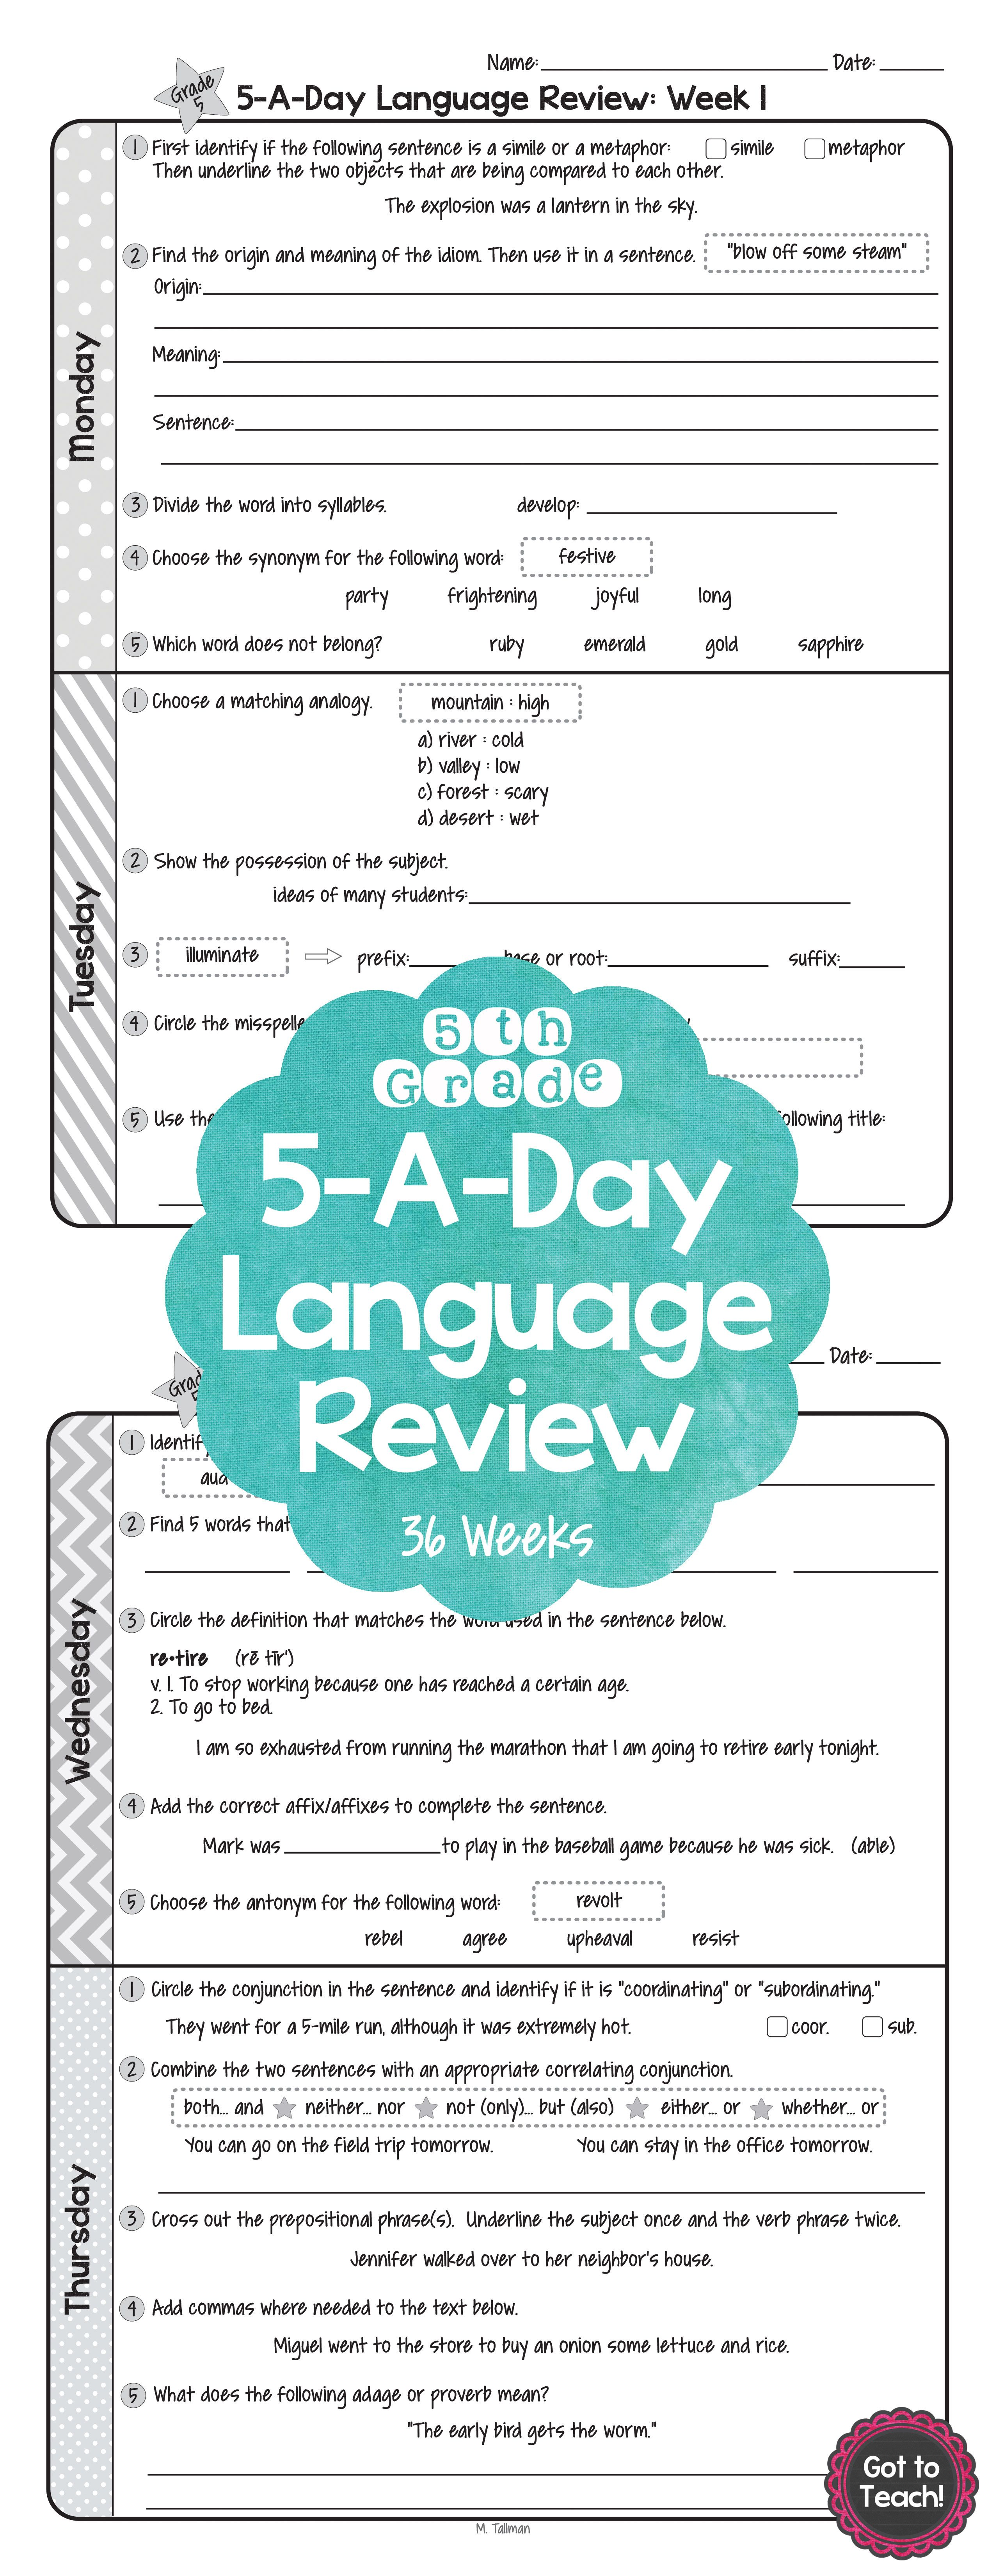 Common core language arts worksheets for 4th grade